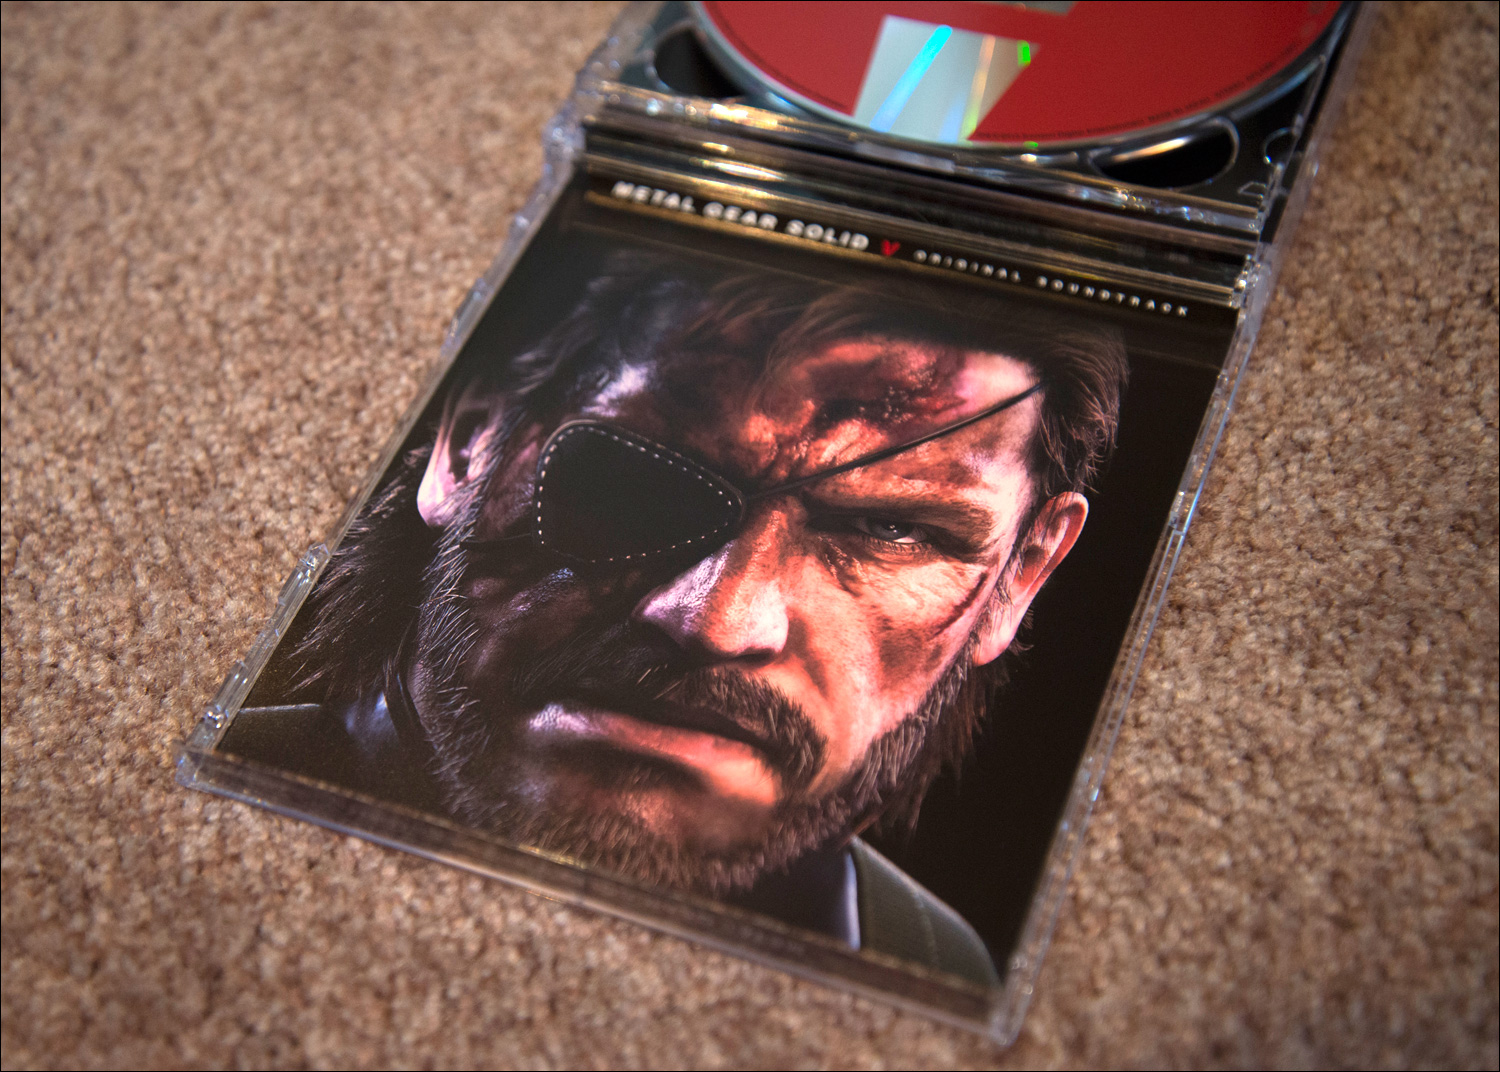 Metal-Gear-Solid-V-Original-Soundtrack-Open-2